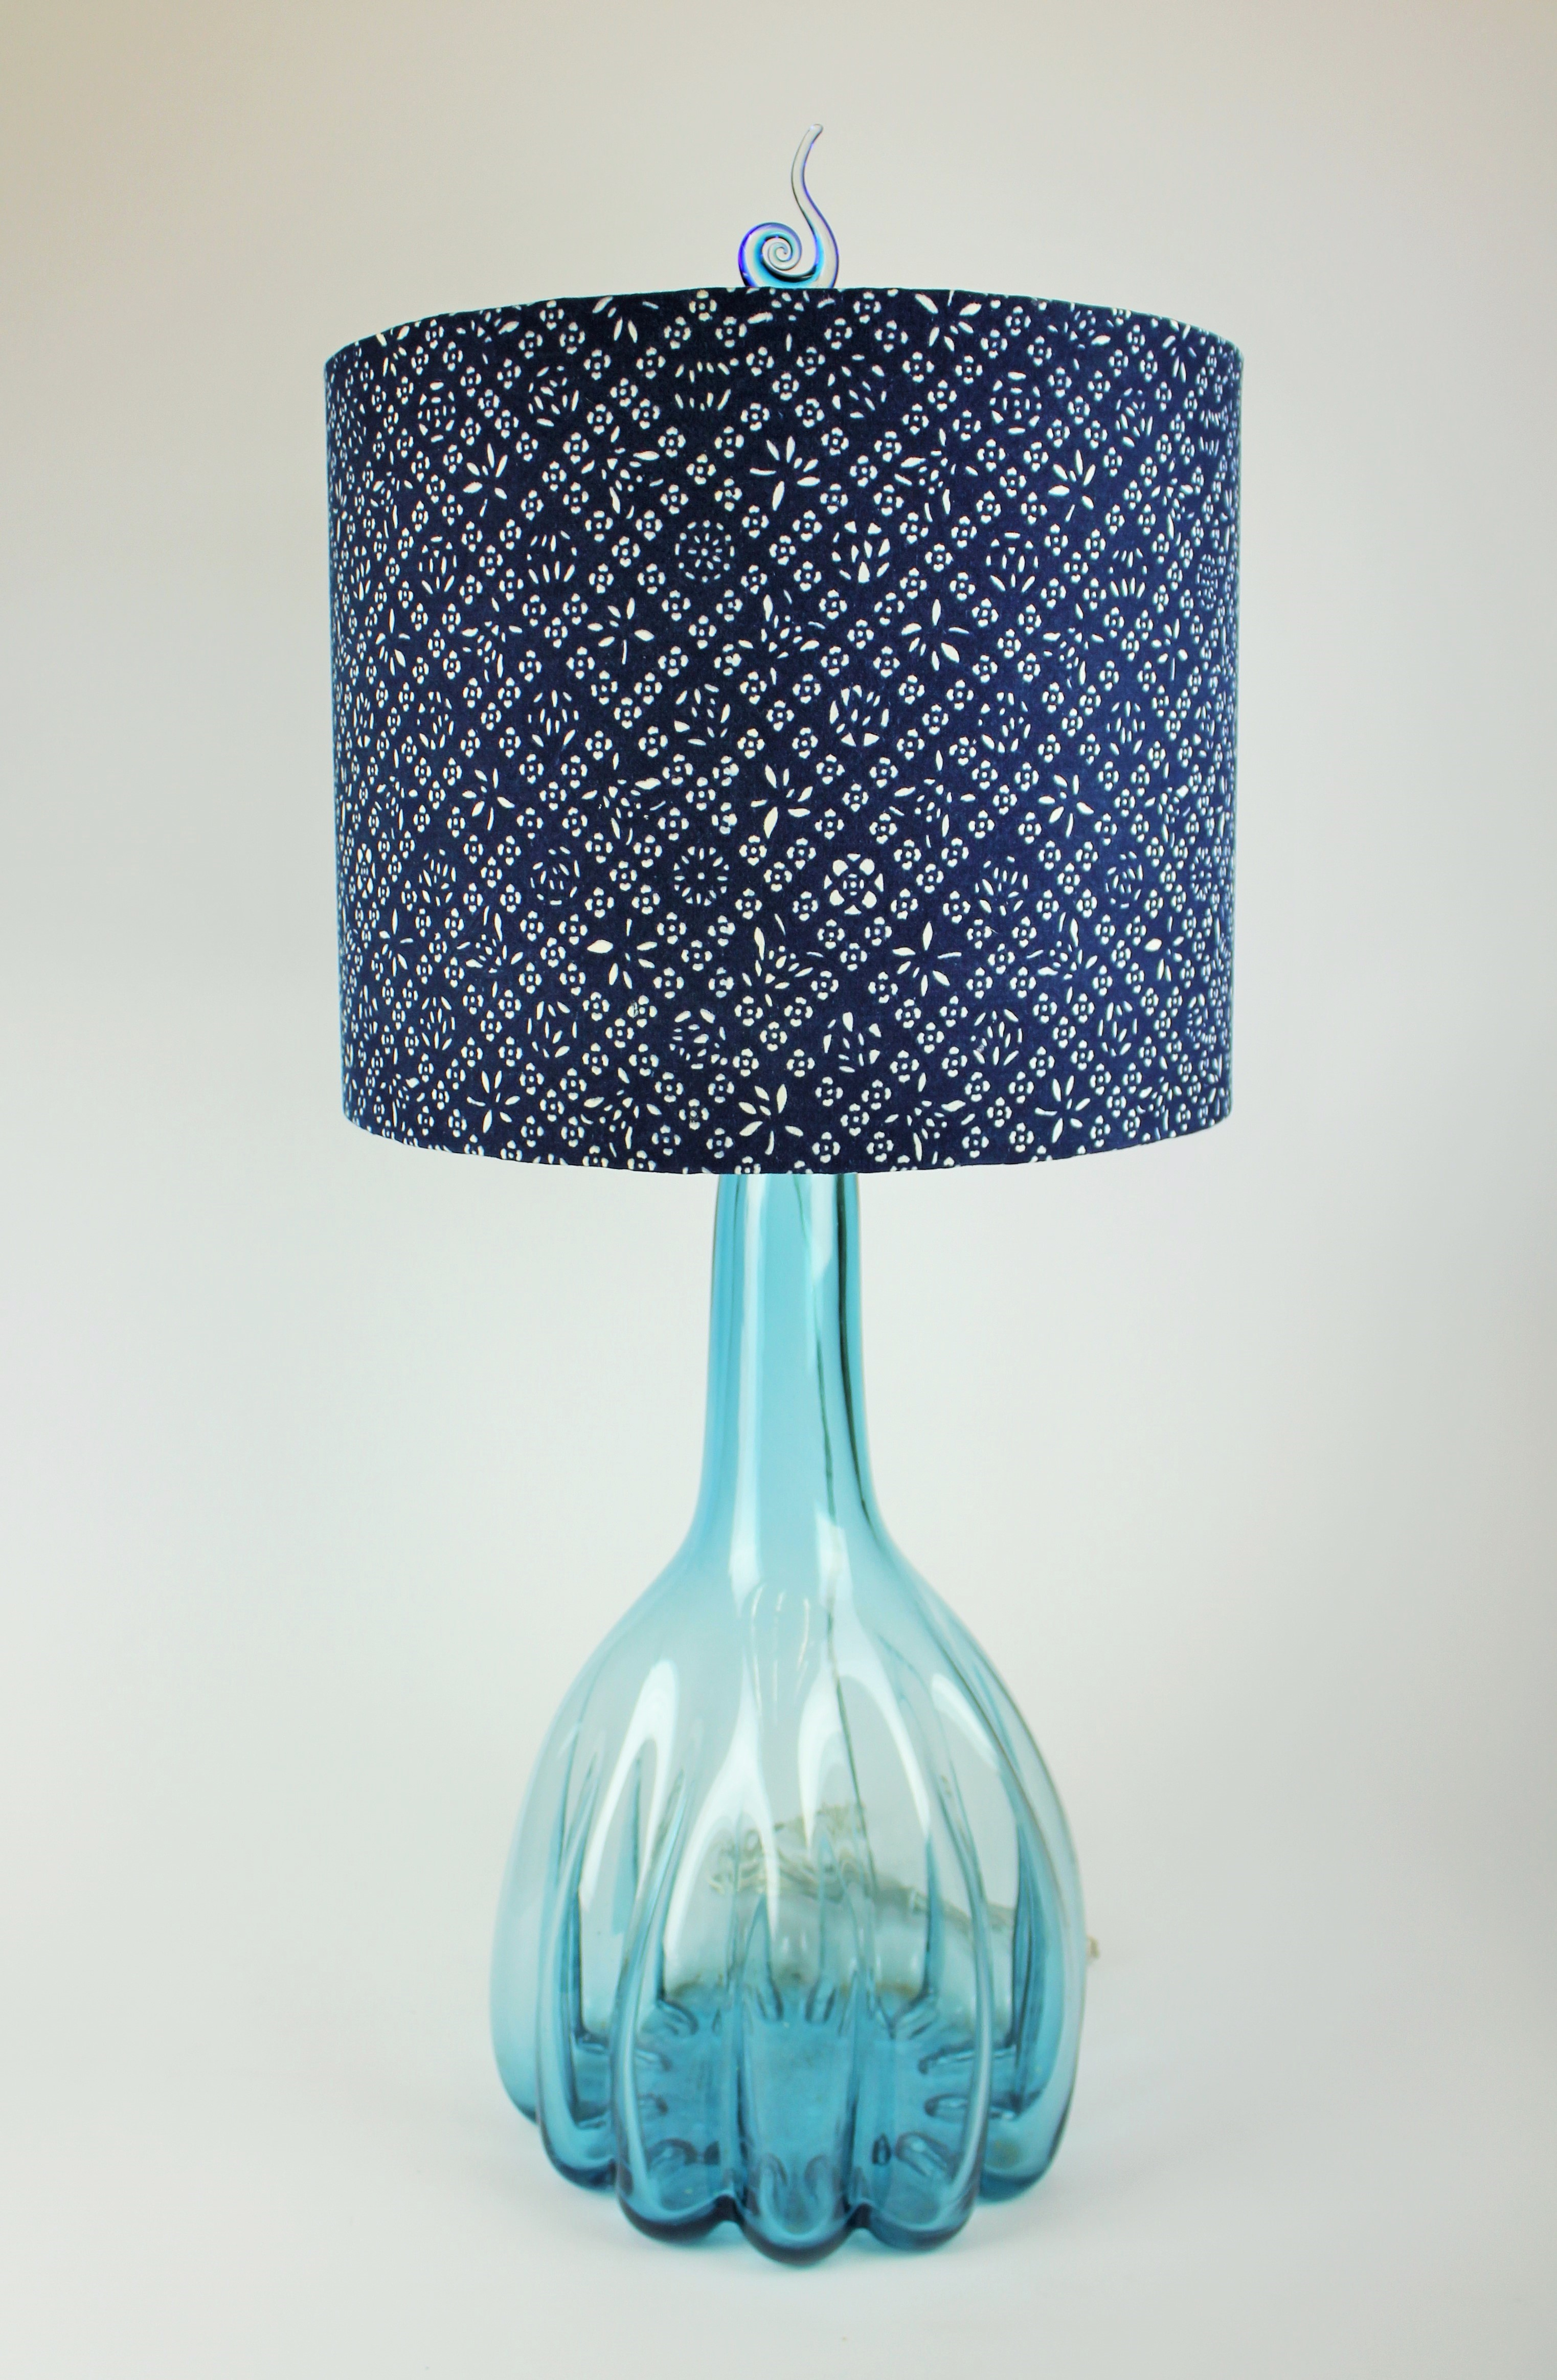 Lamp shade specialties 10578 w pico blvd los angeles ca 90064 yp brands chandelier cleaning chandelier repairs custom lampshades custom lamps interior design matching lamp accessories lamp repairs vintage lamp aloadofball Image collections